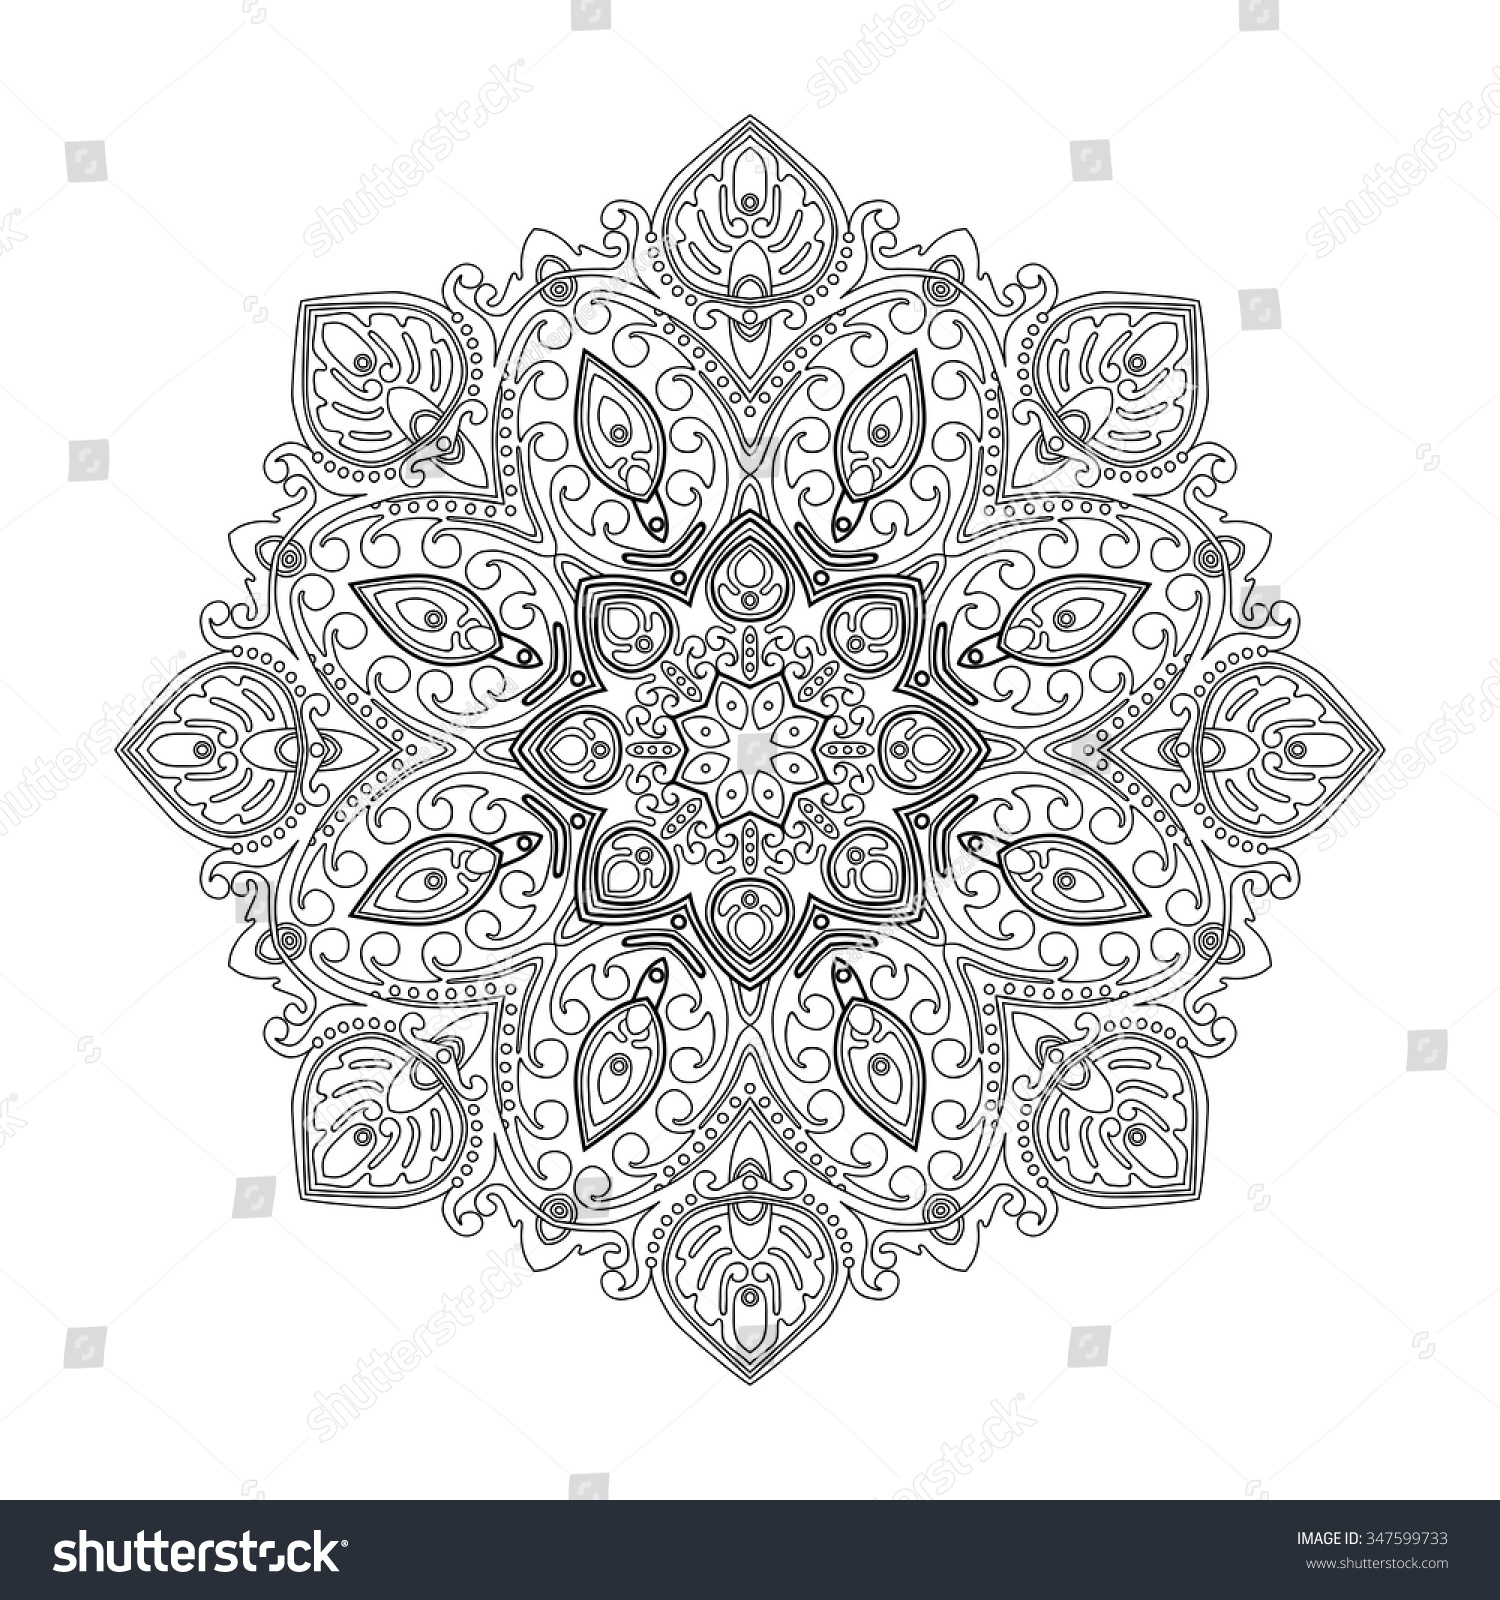 circle abstract coloring pages - photo#21